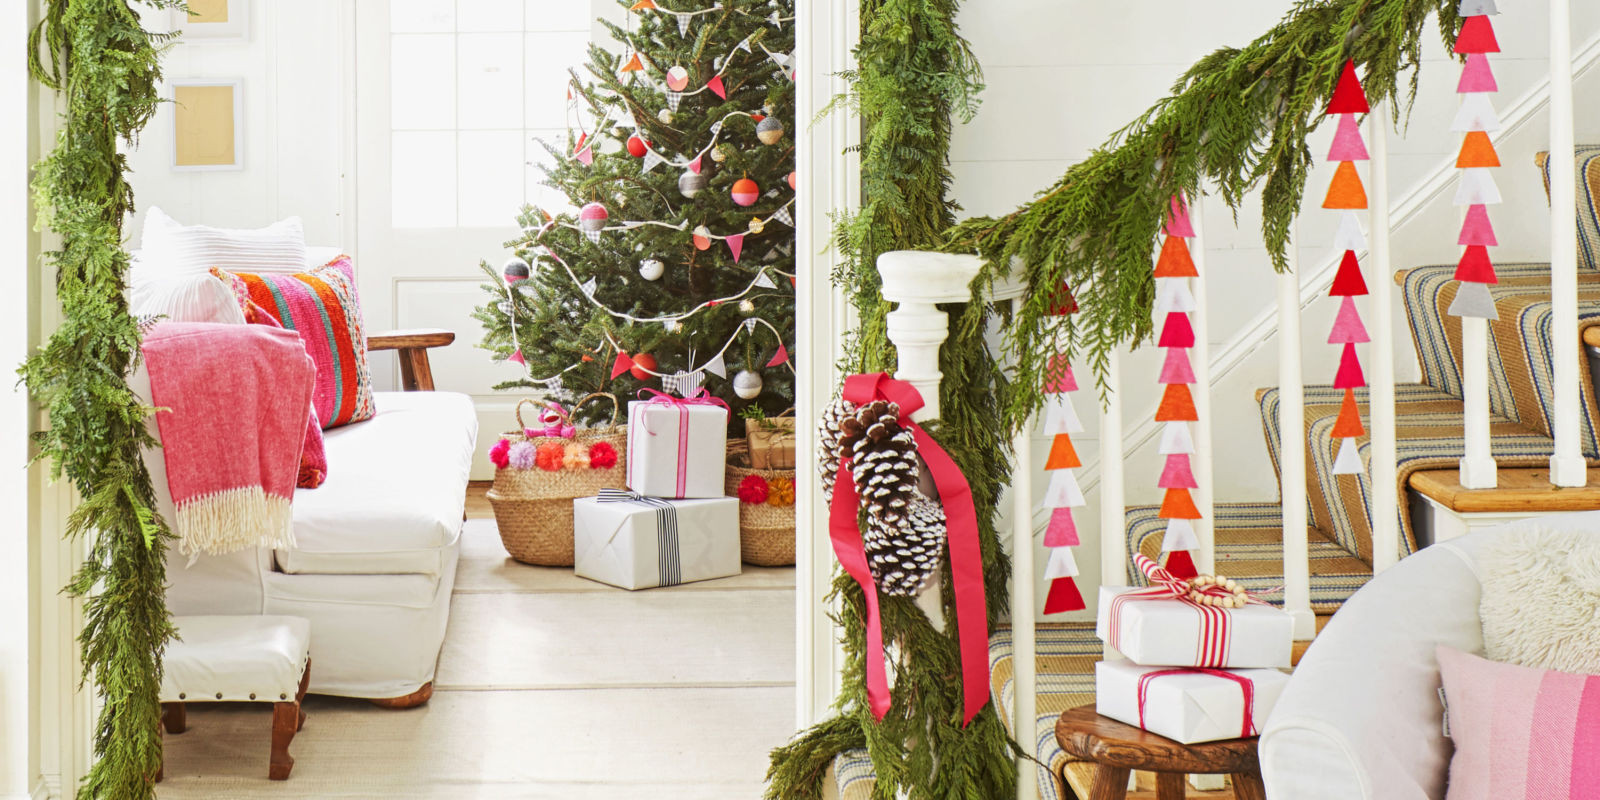 Best ideas about DIY Christmas Decor . Save or Pin 80 DIY Christmas Decorations Easy Christmas Decorating Ideas Now.